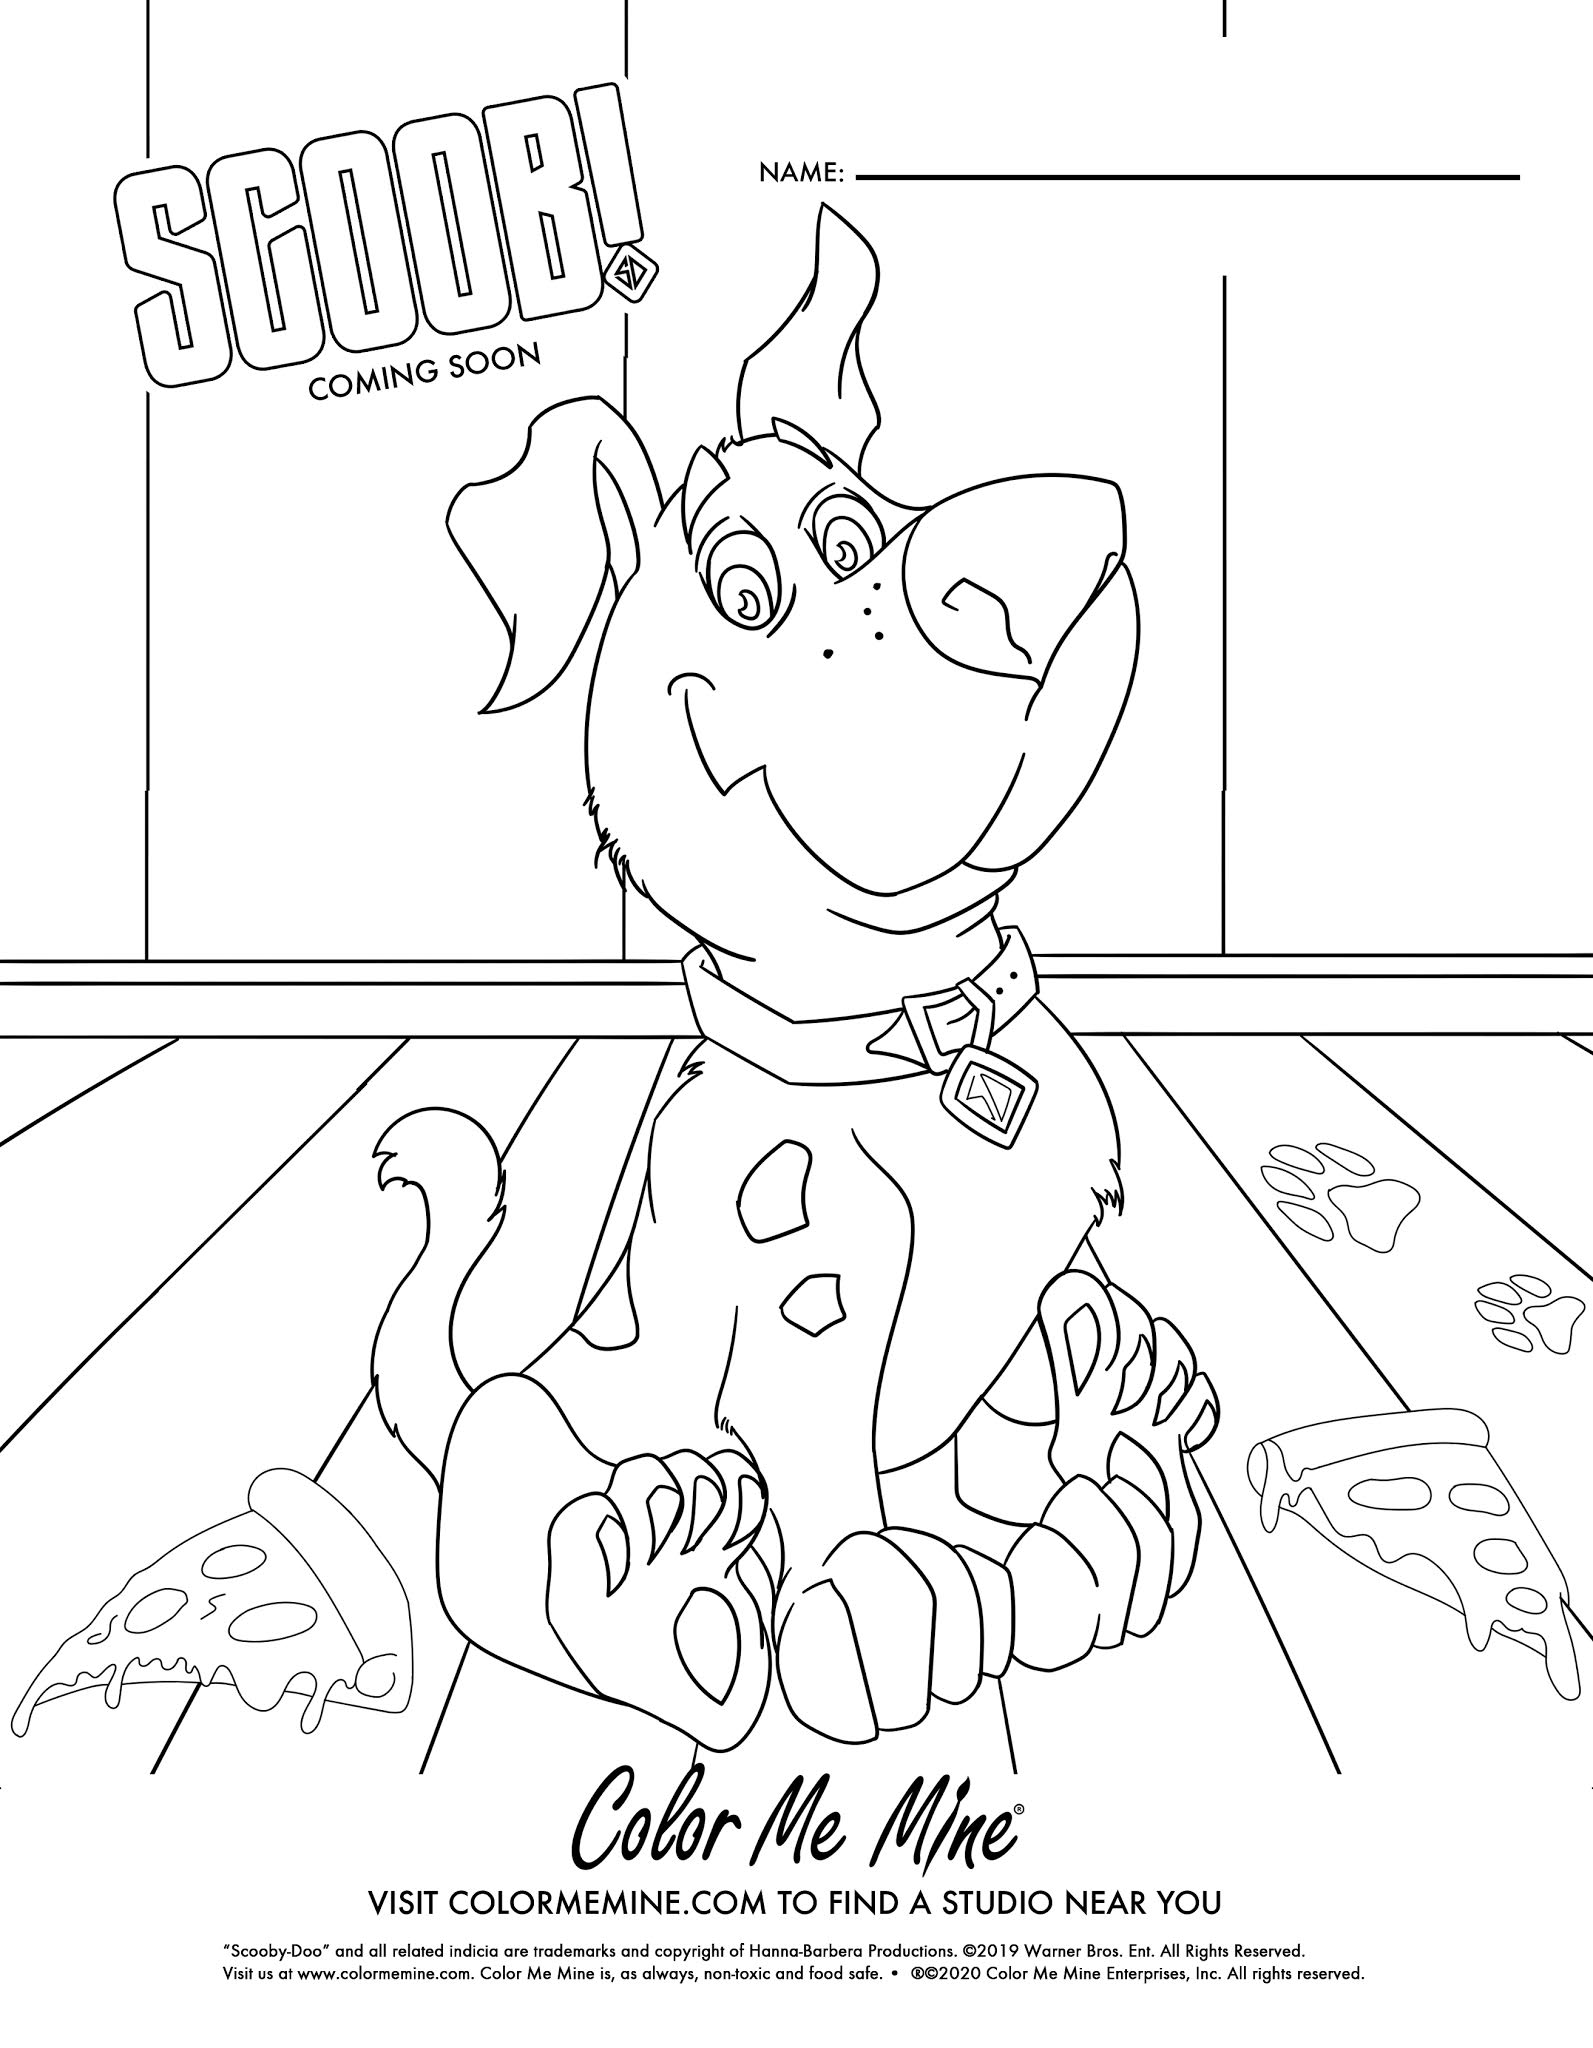 FREE SCOOB Coloring Sheets!